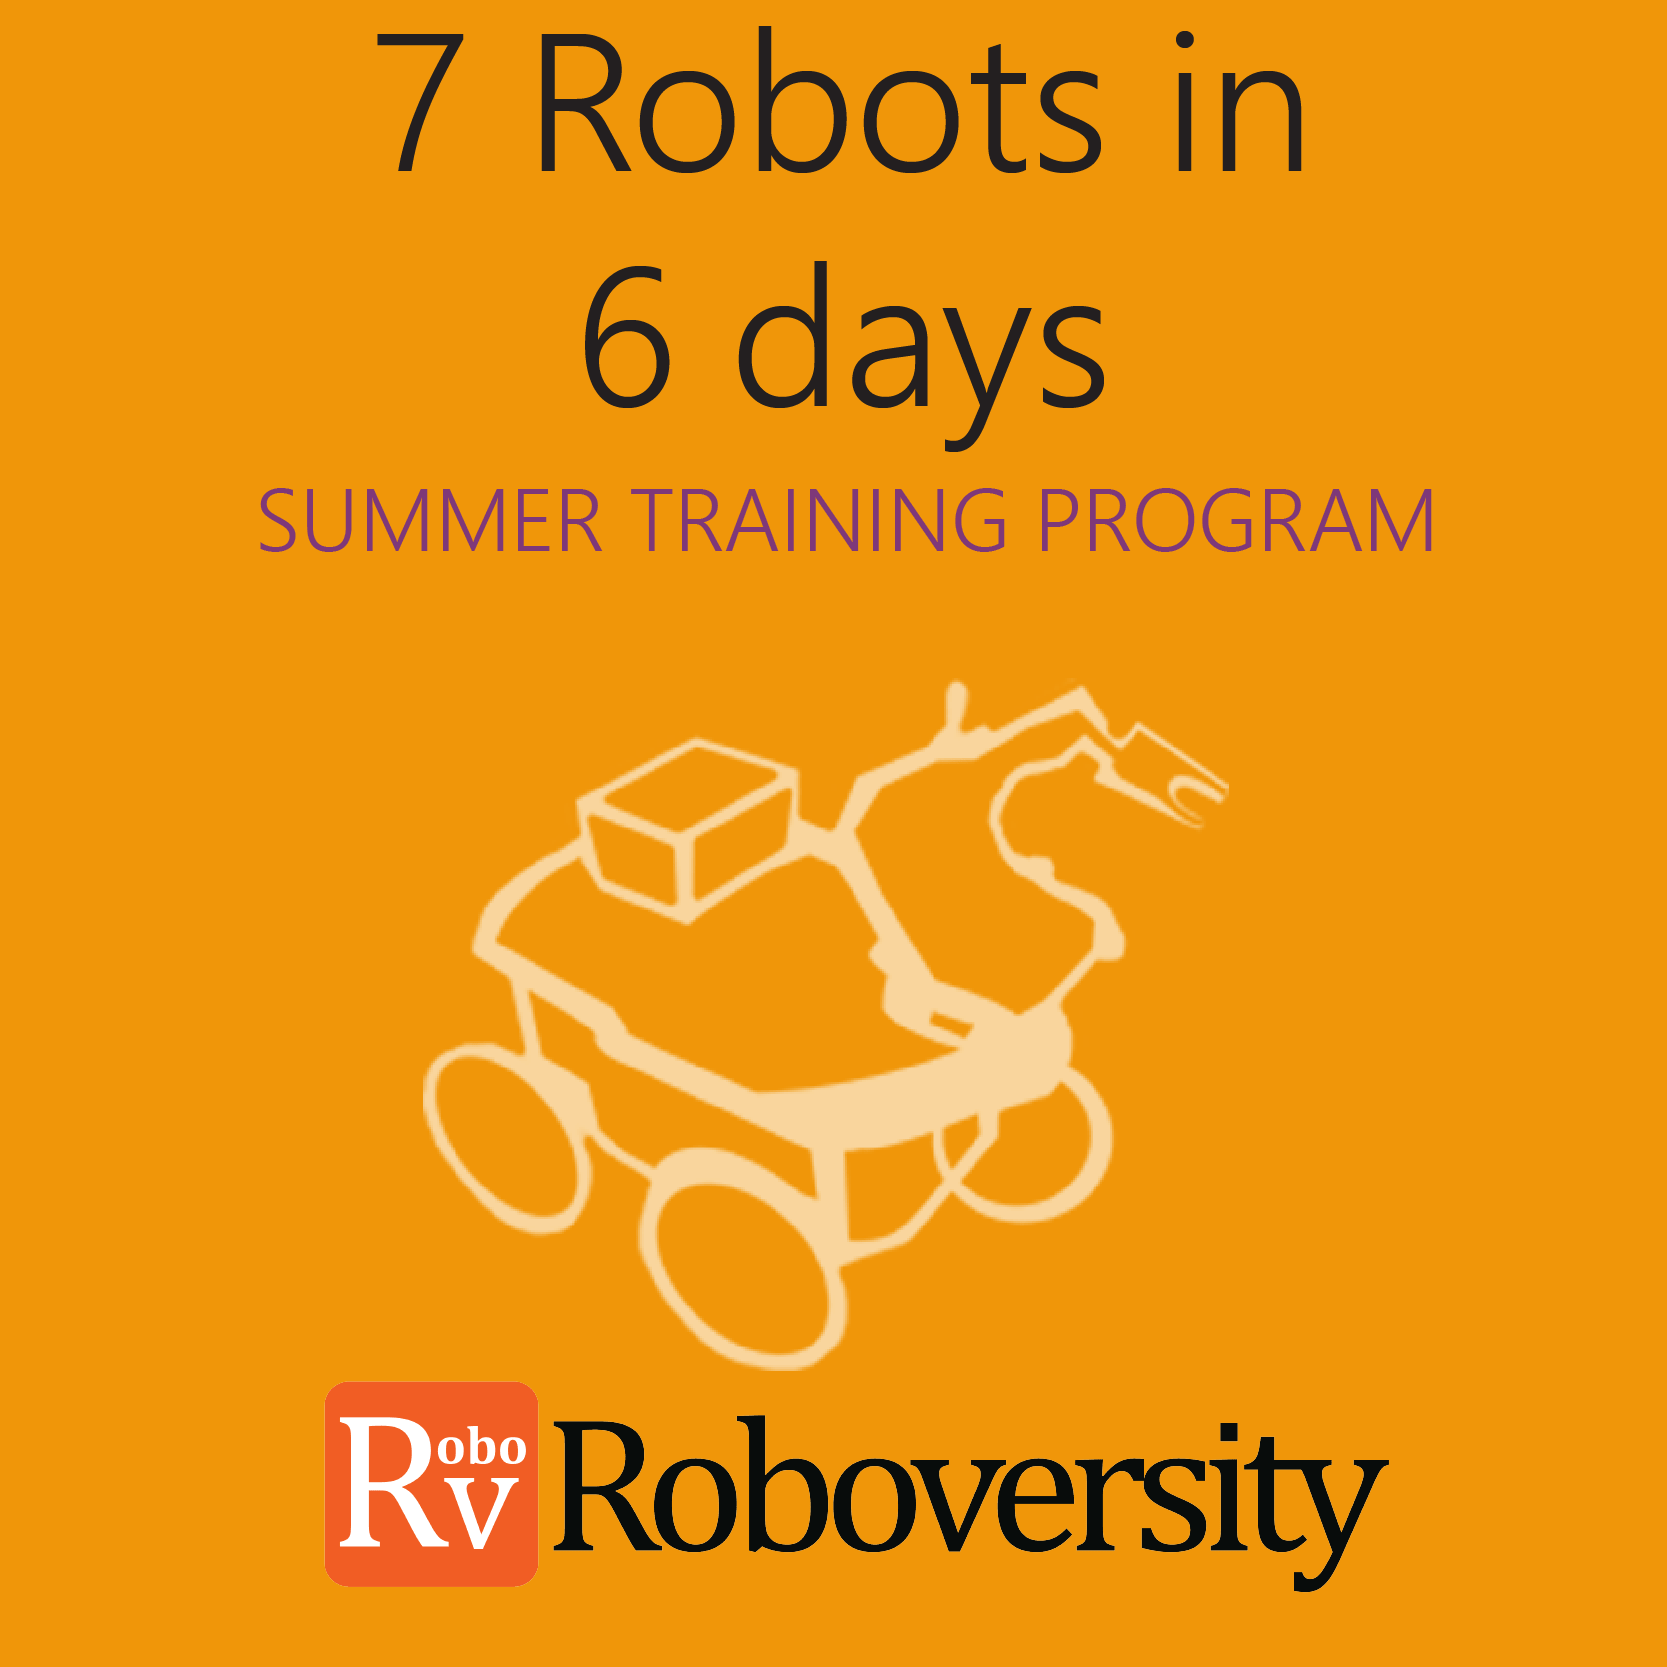 Summer Training Program in Robotics - 7 Robots in 6 Days  at Skyfi Labs Center, Gate Forum, Guindy Workshop